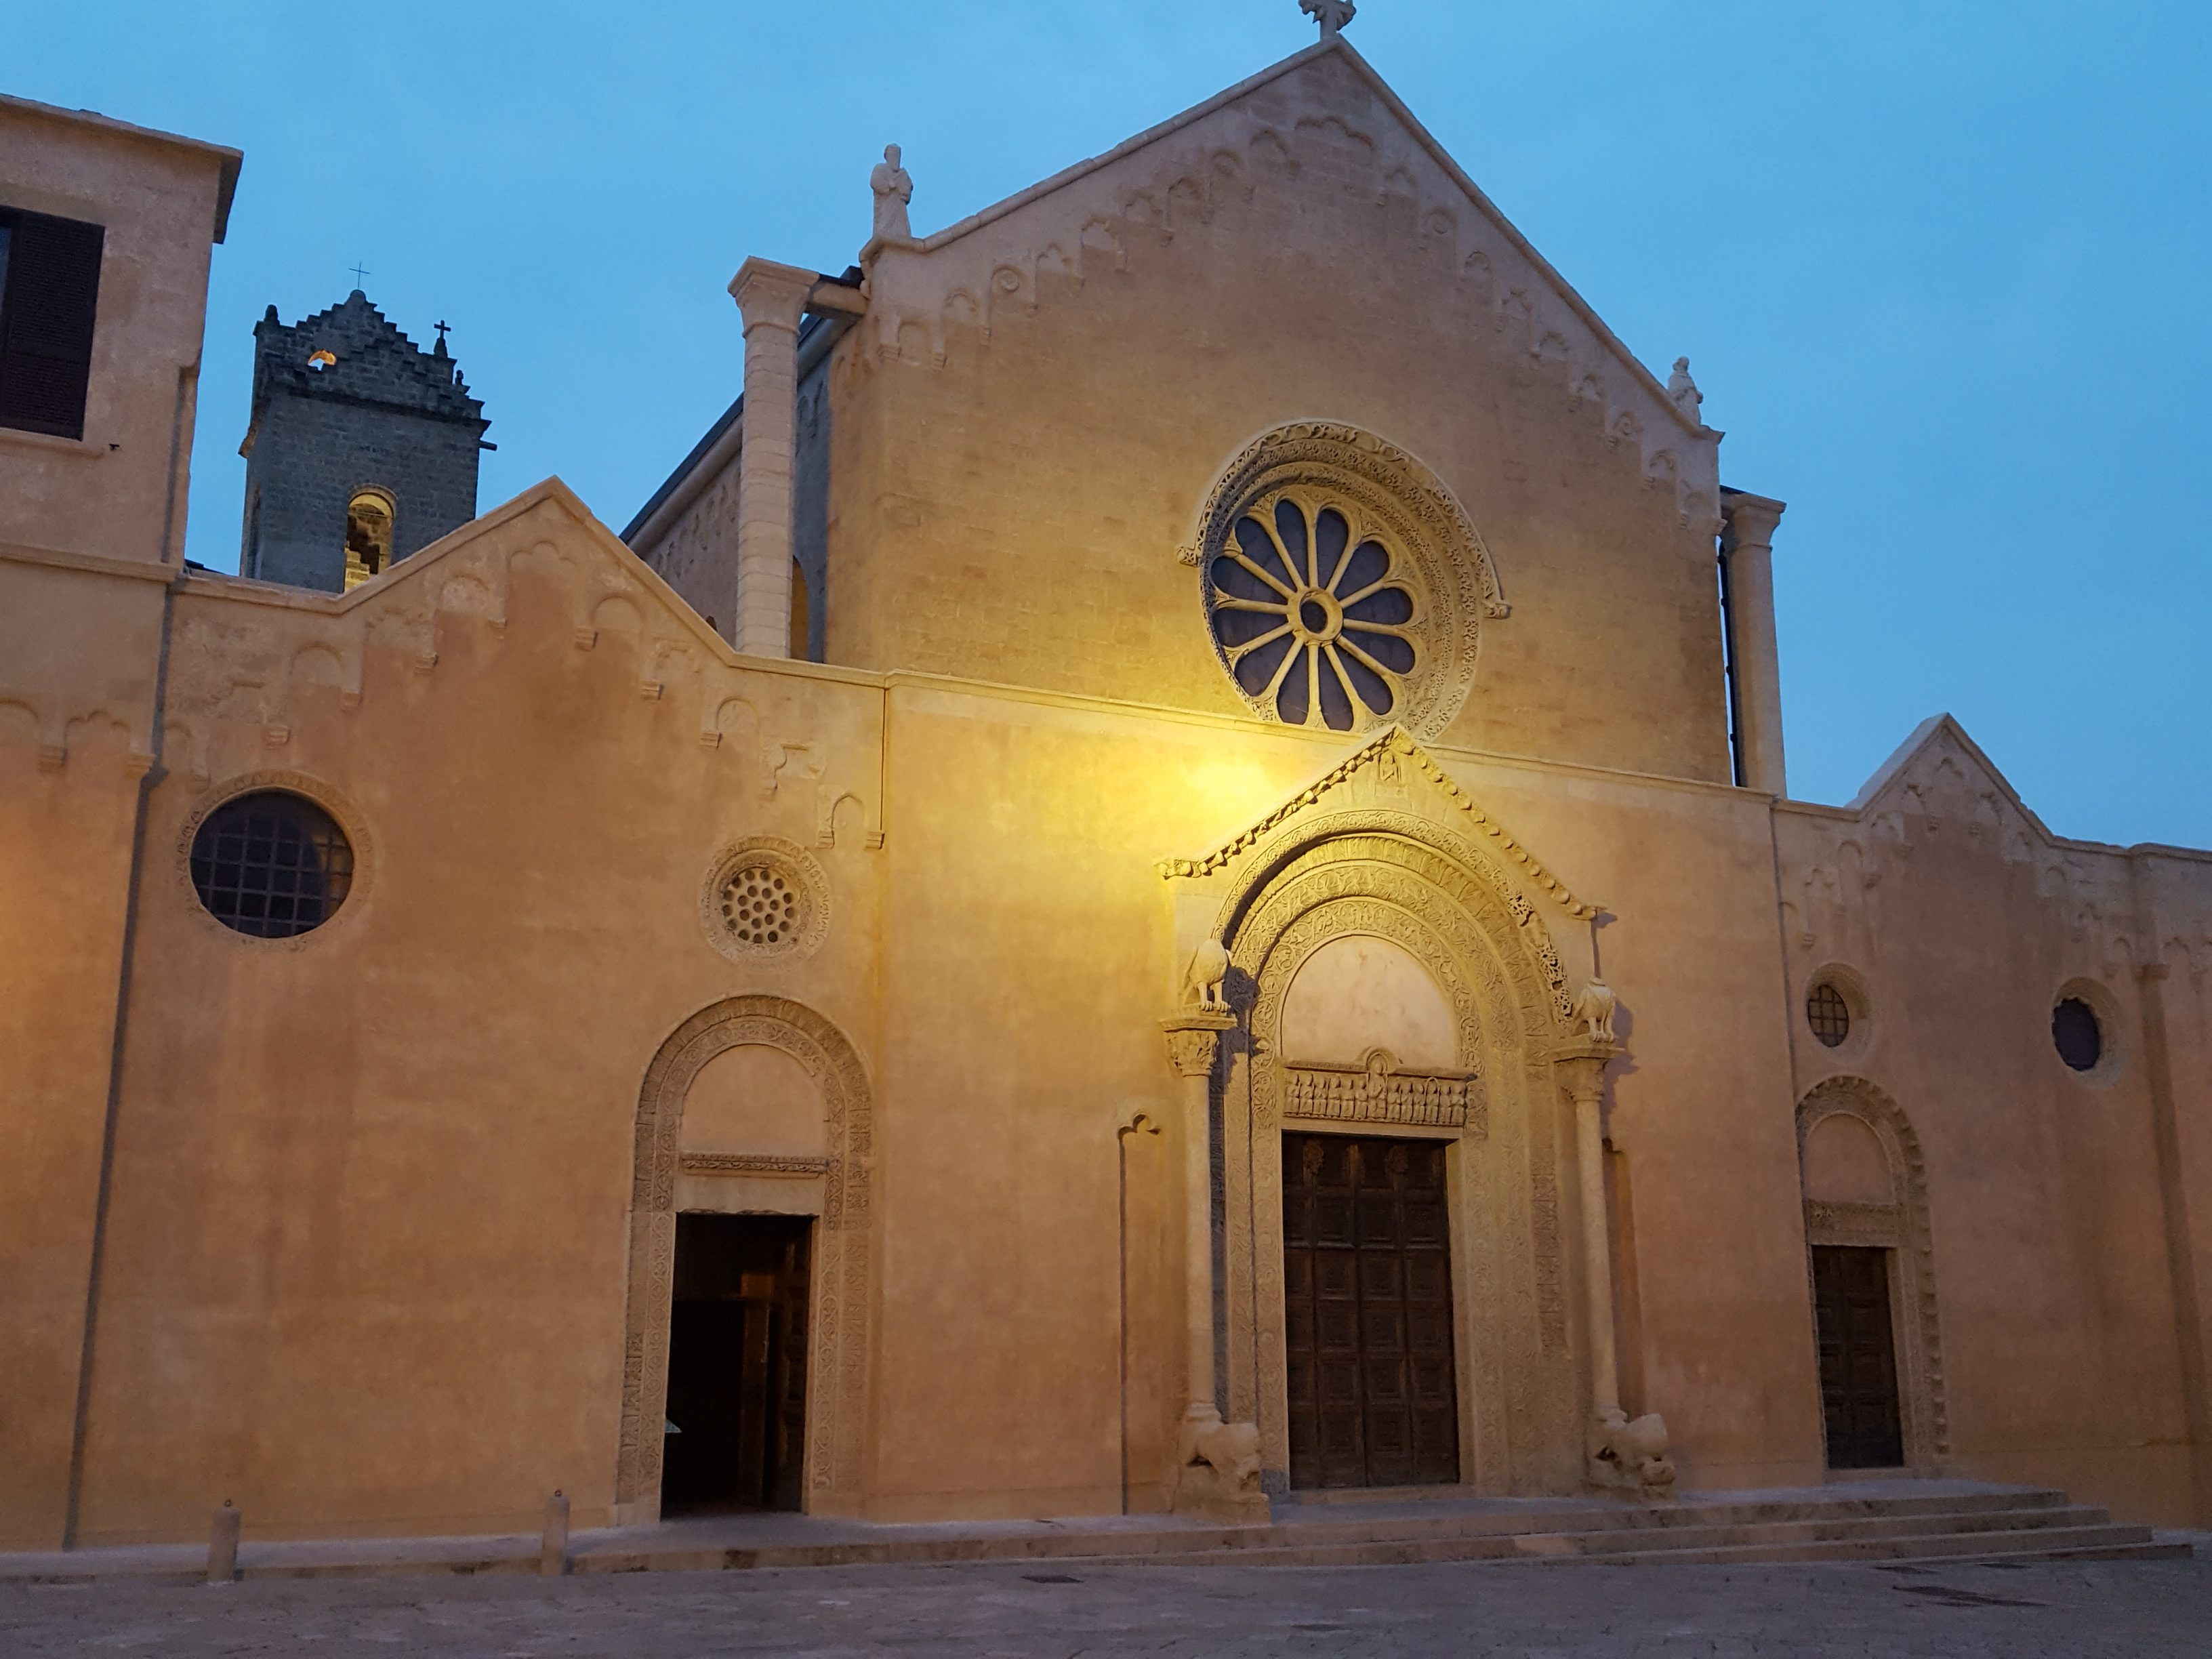 Santa Caterina d'Alessandria church in Galatina